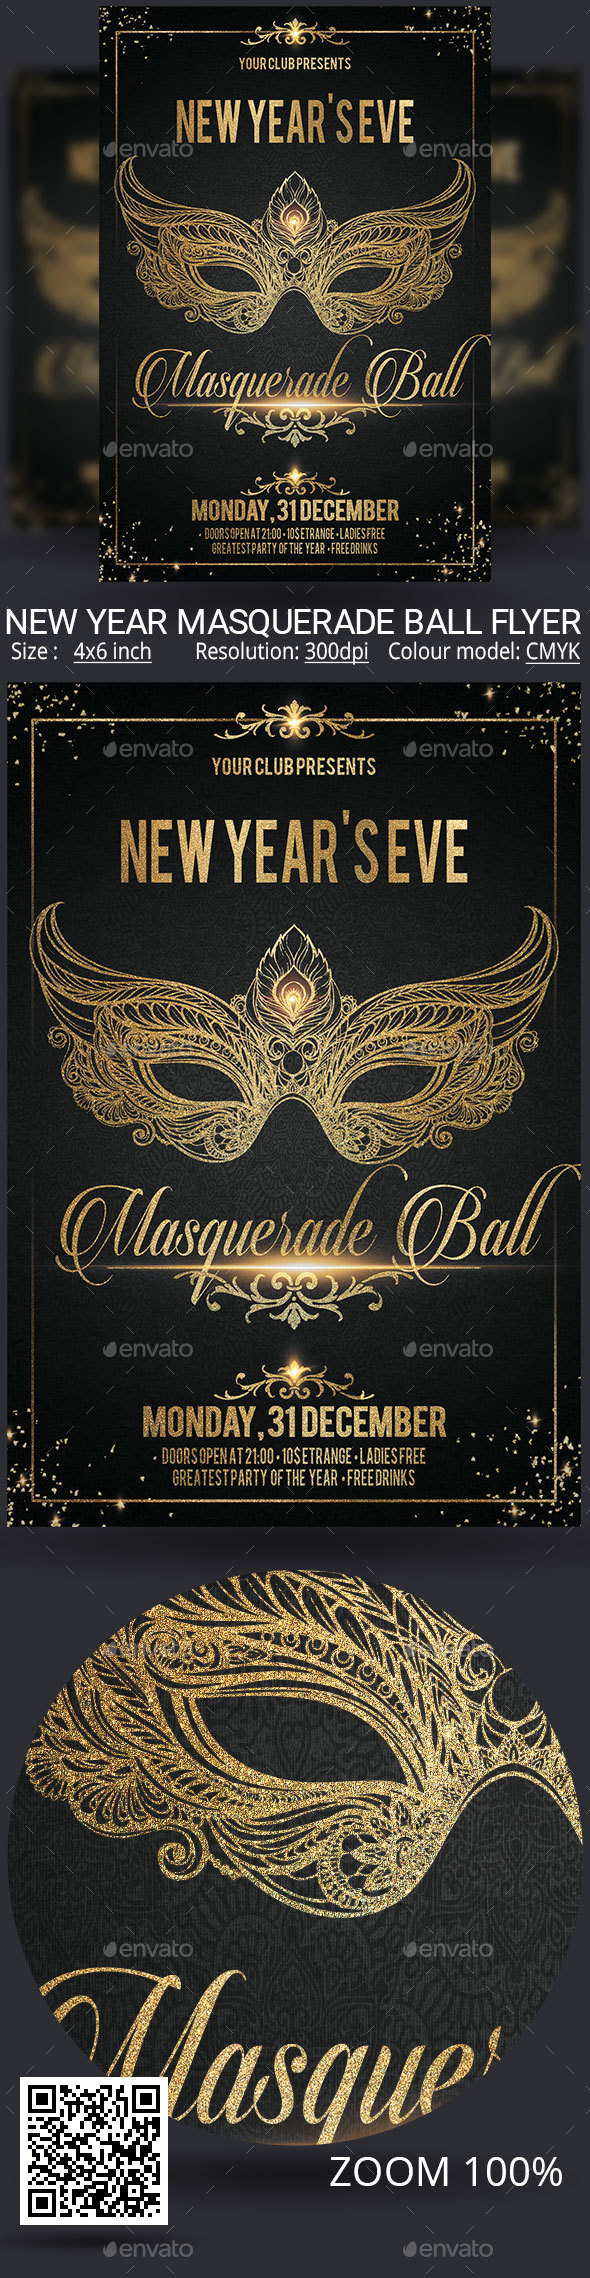 New Year Carnival Masquerade Ball Flyer - Clubs & Parties Events